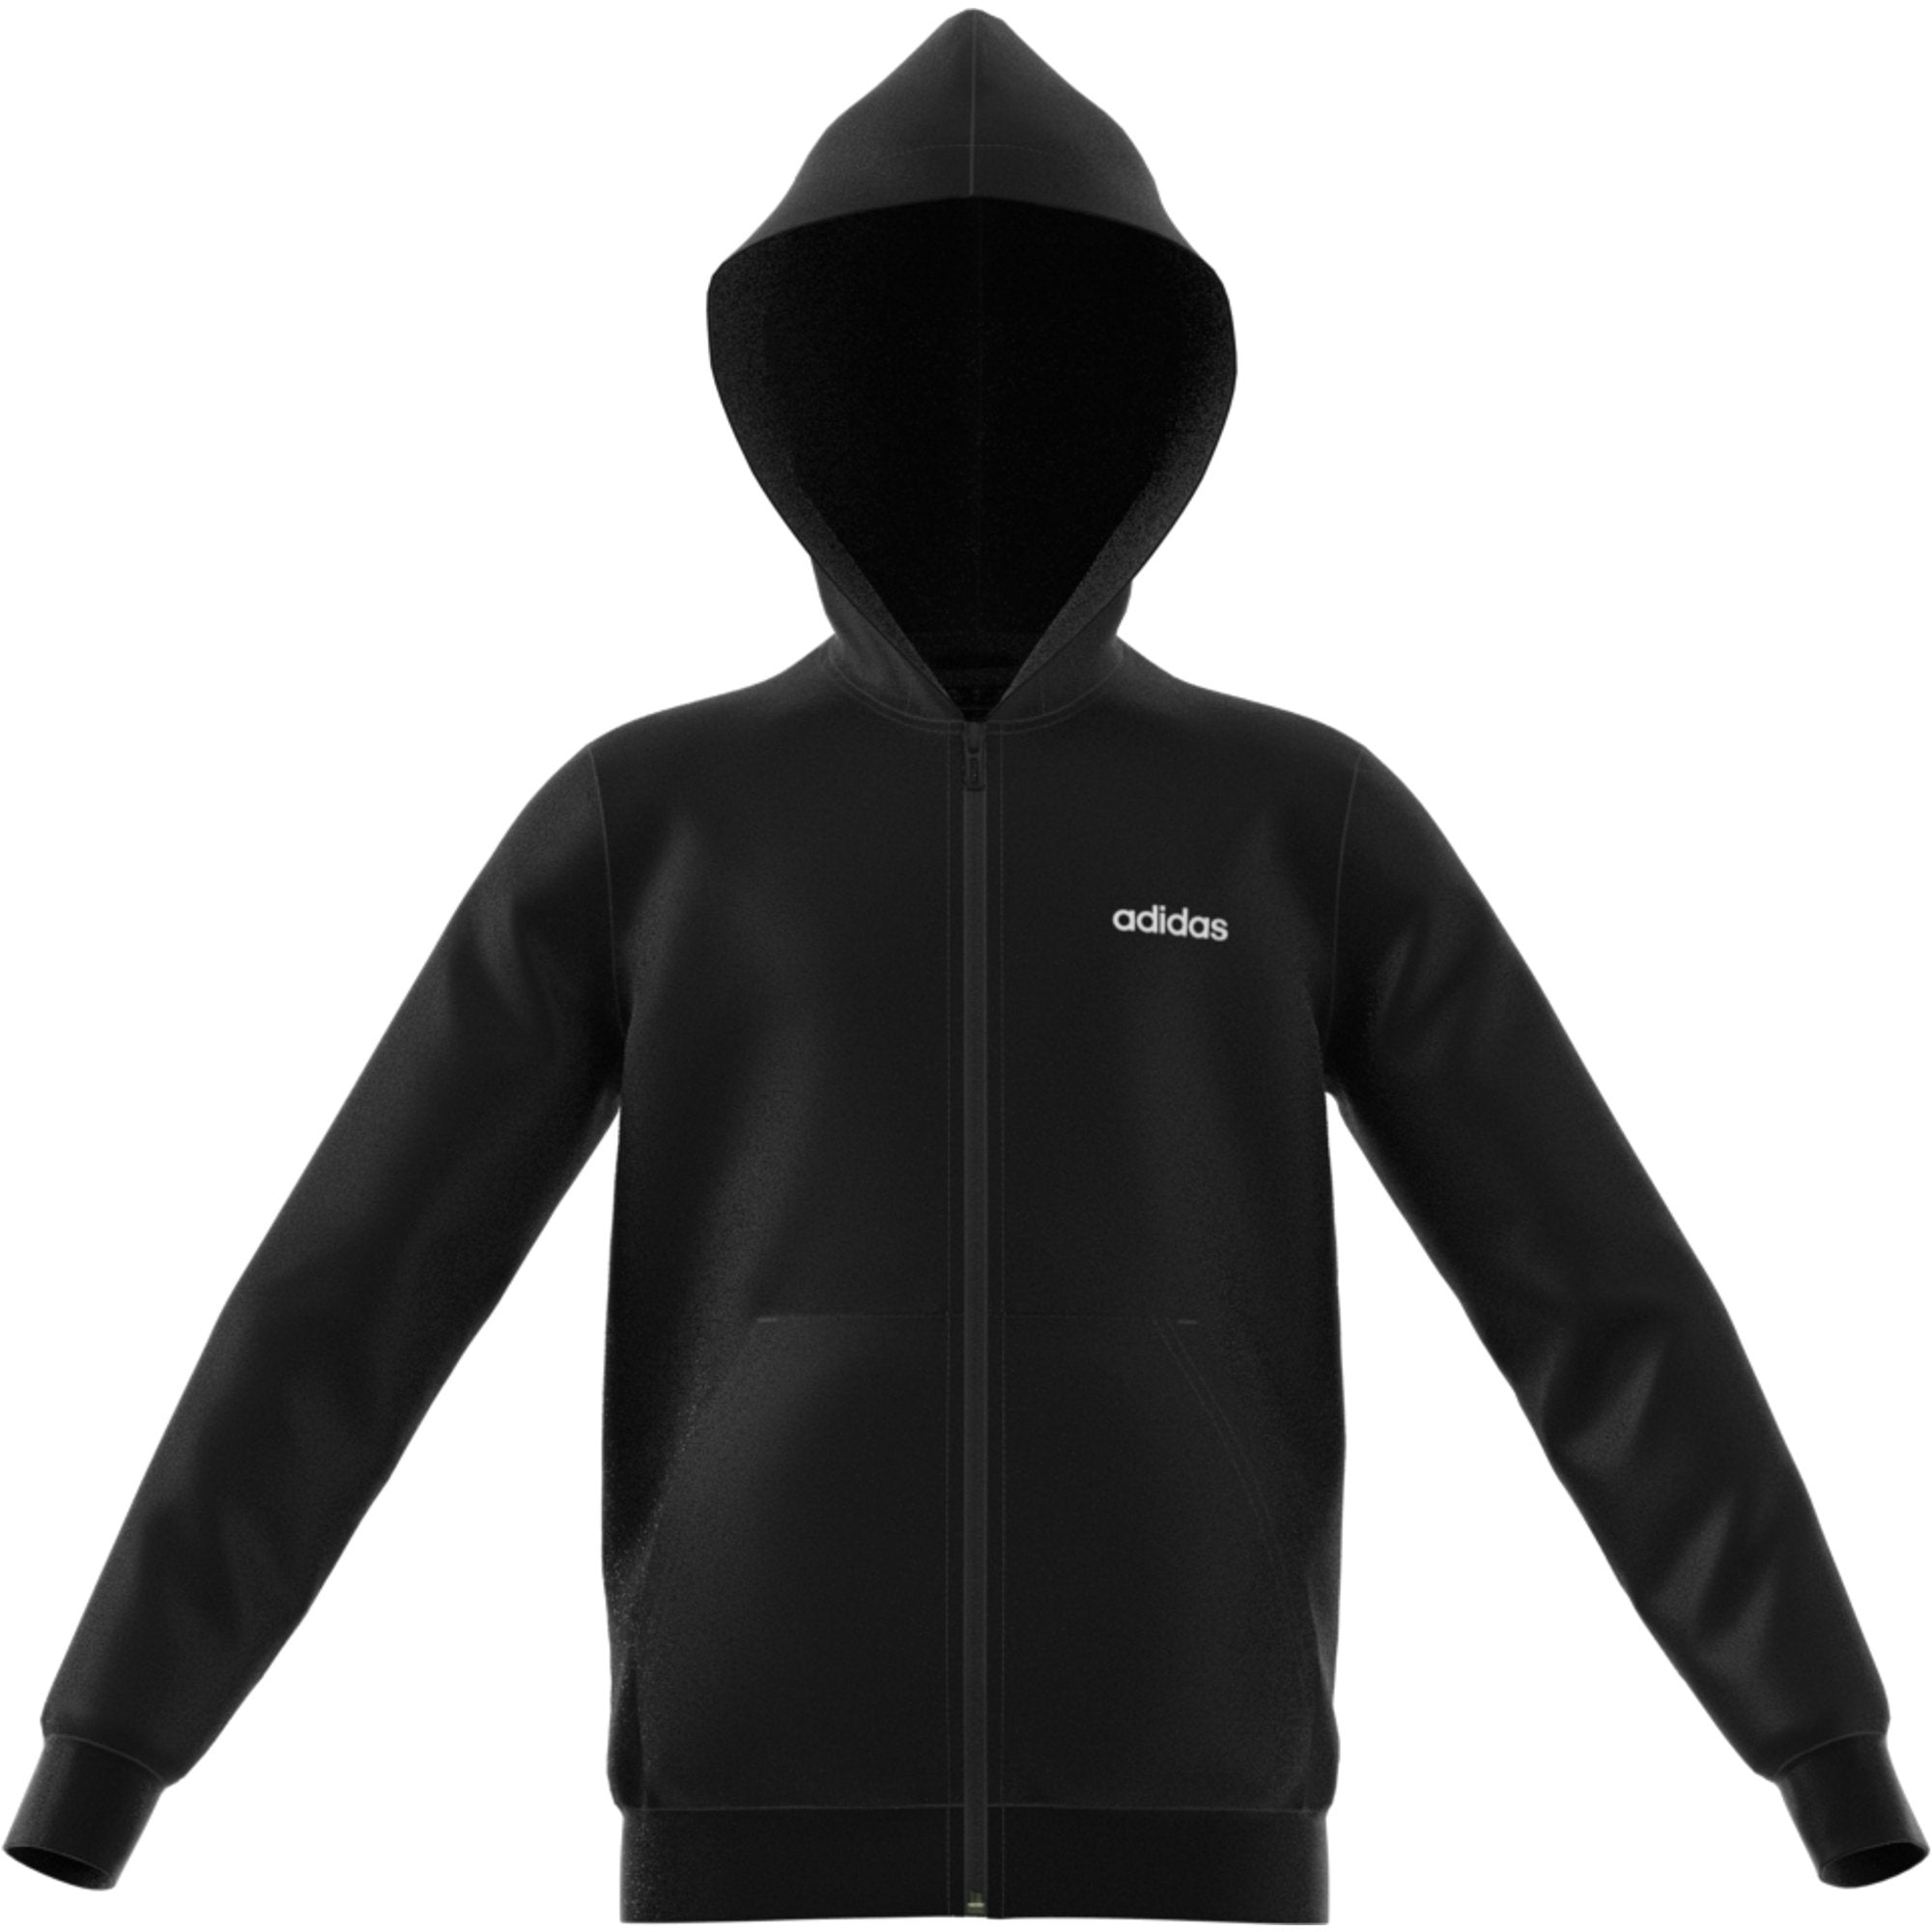 Adidas Boys Essentials Linear Hoodie - black-white Boys Apparel Adidas